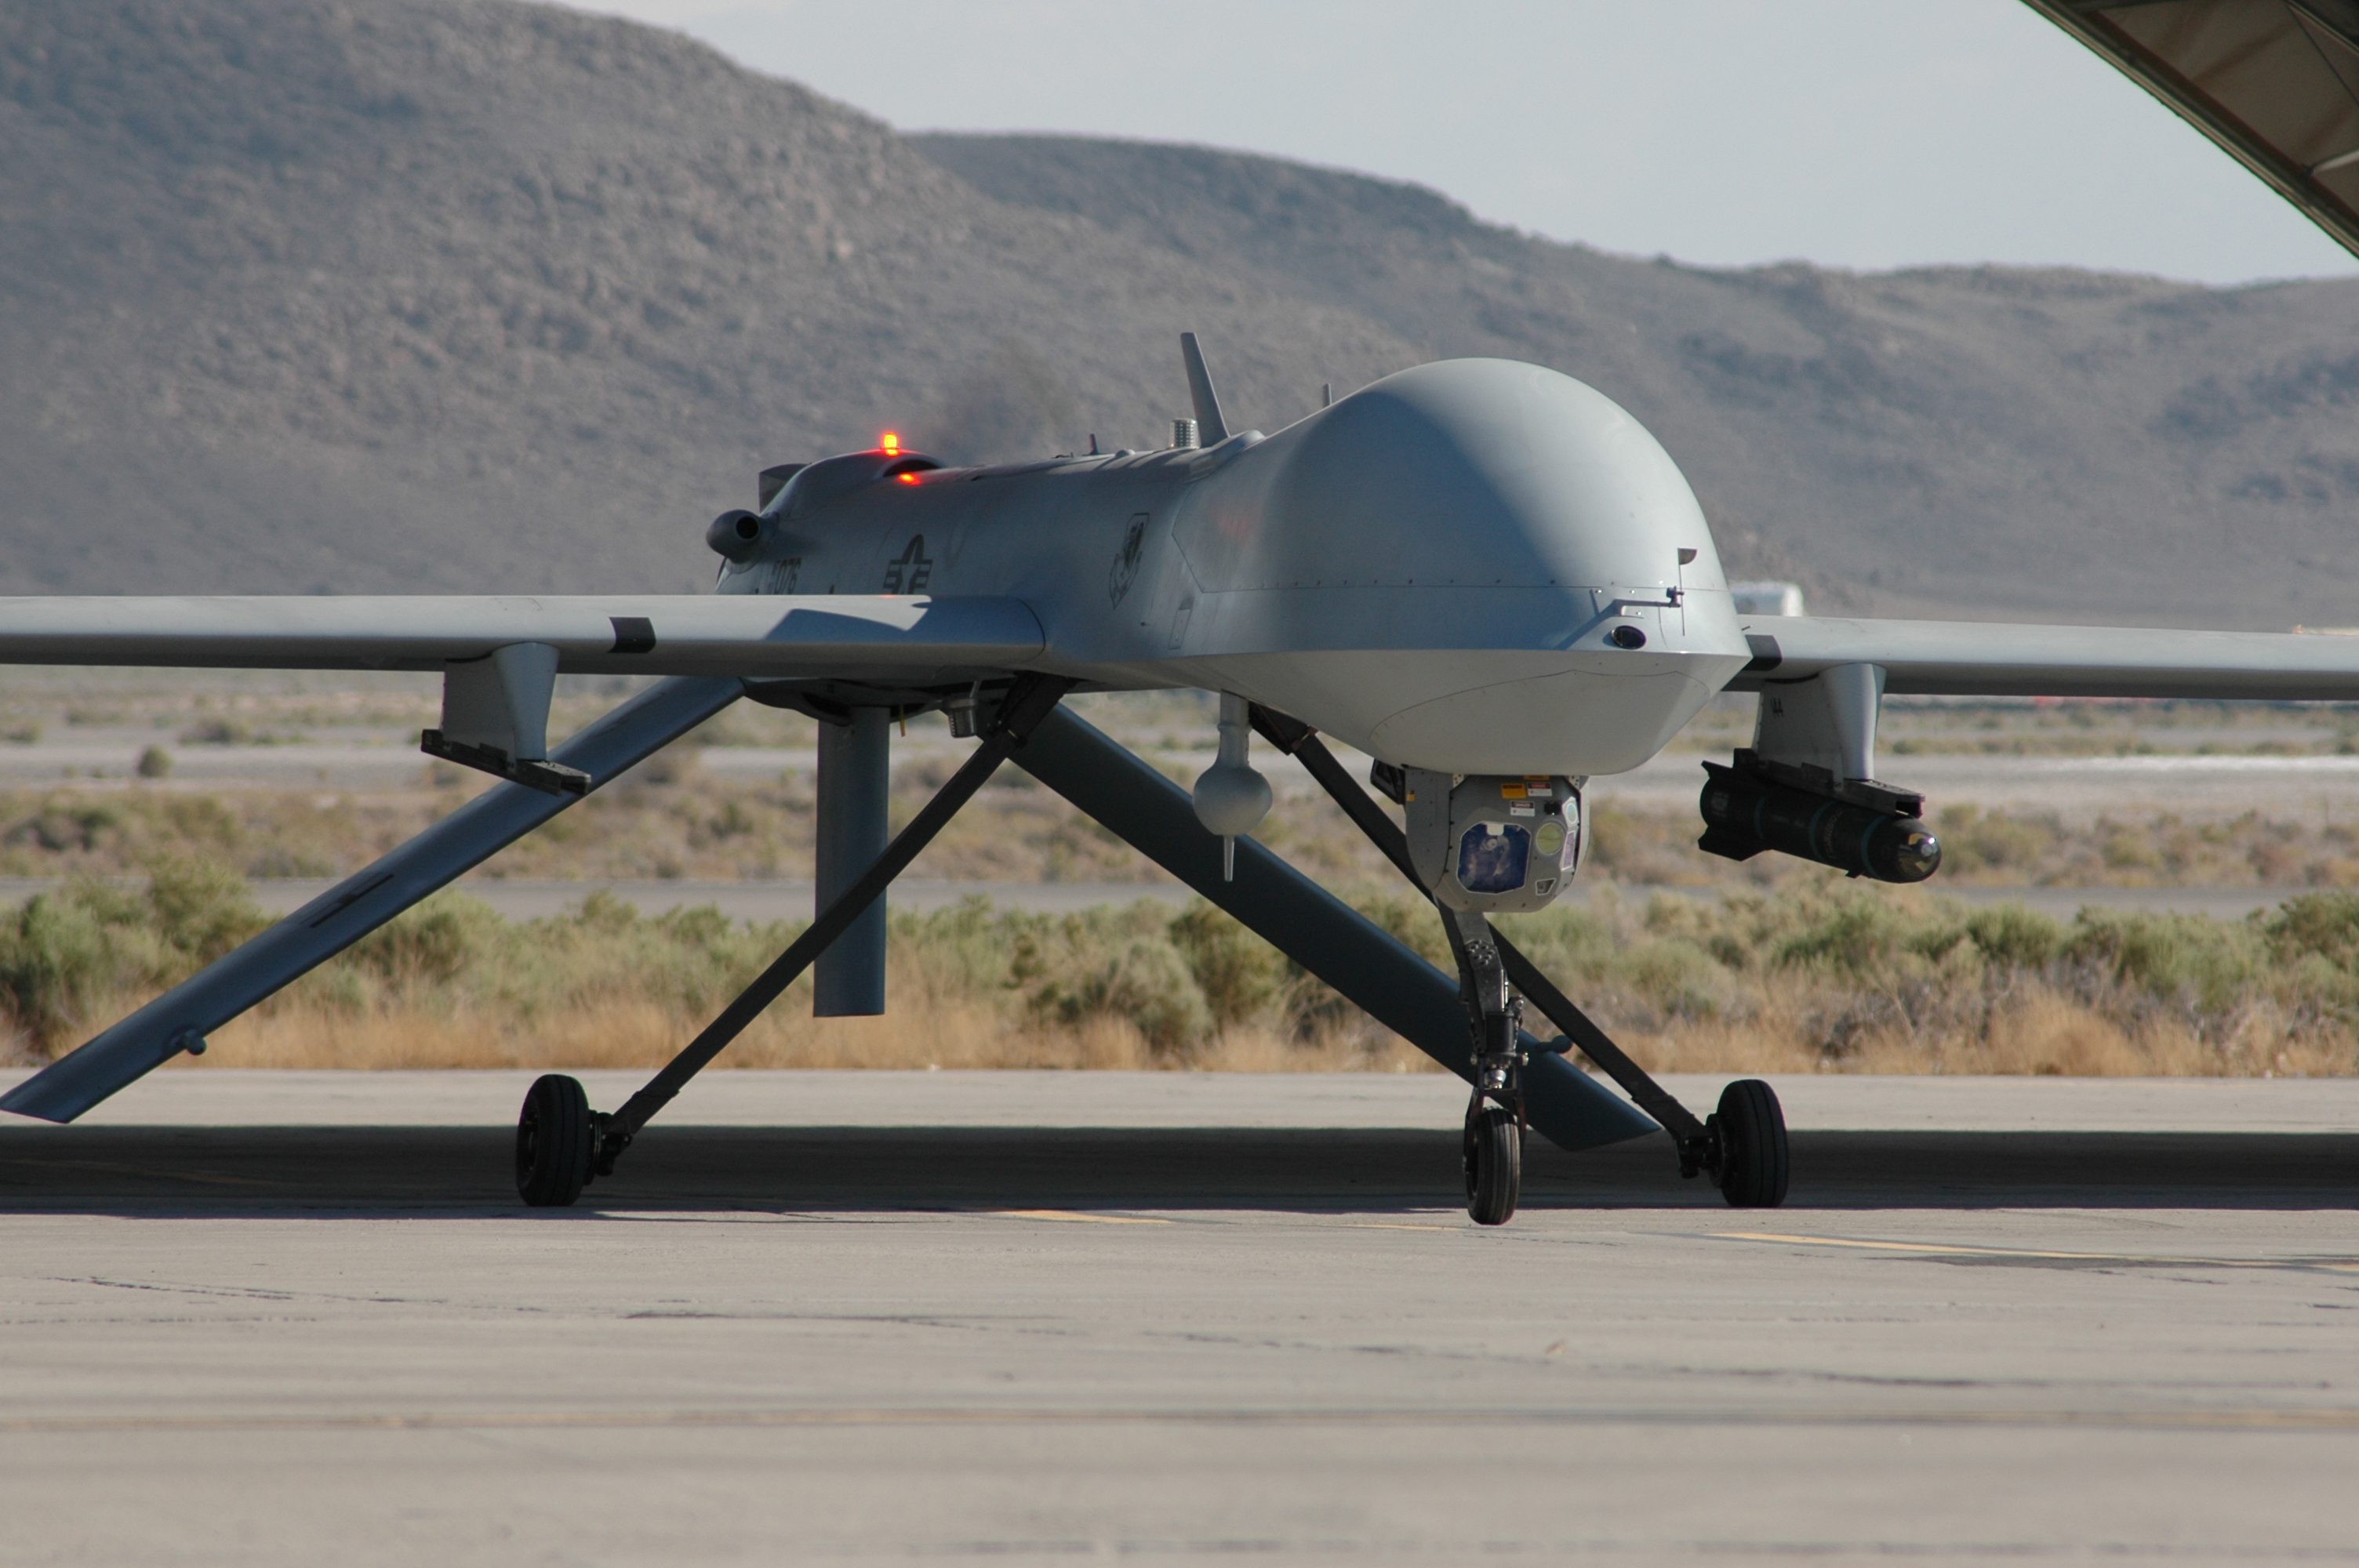 A Predator Drone on the runway.